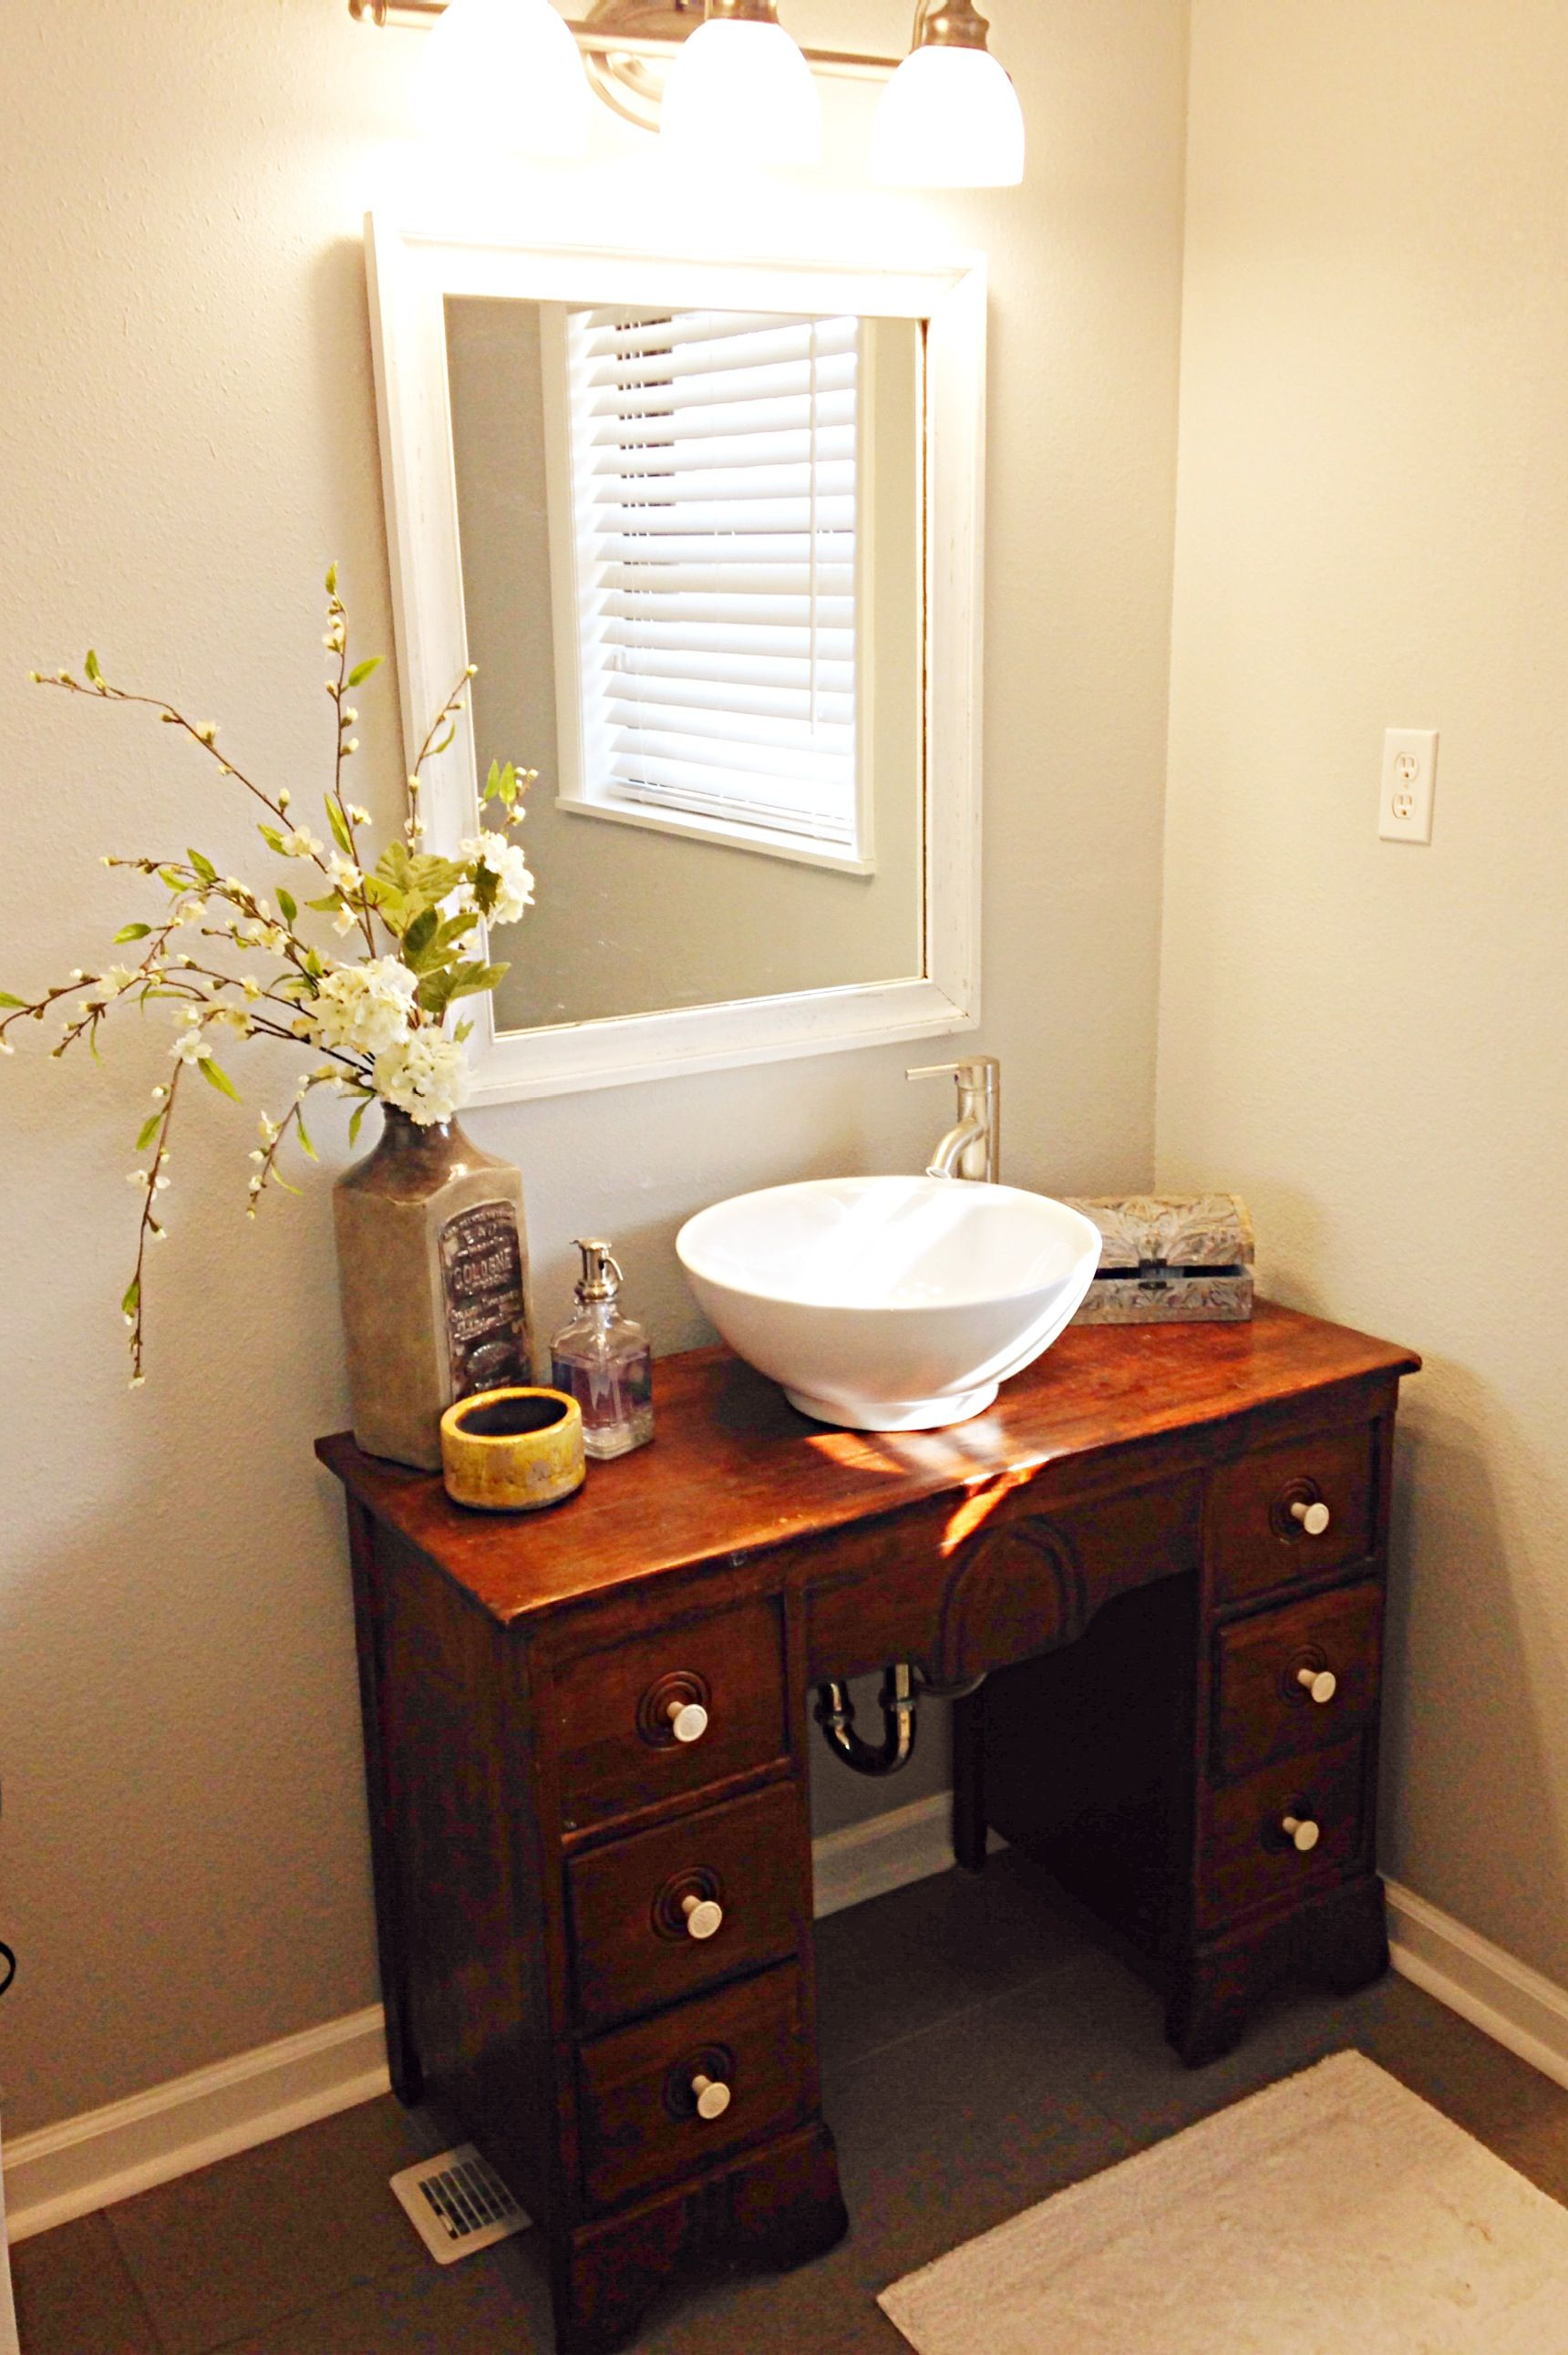 Old Desk Made Into A Vanity With Images Unique Bathroom Vanity